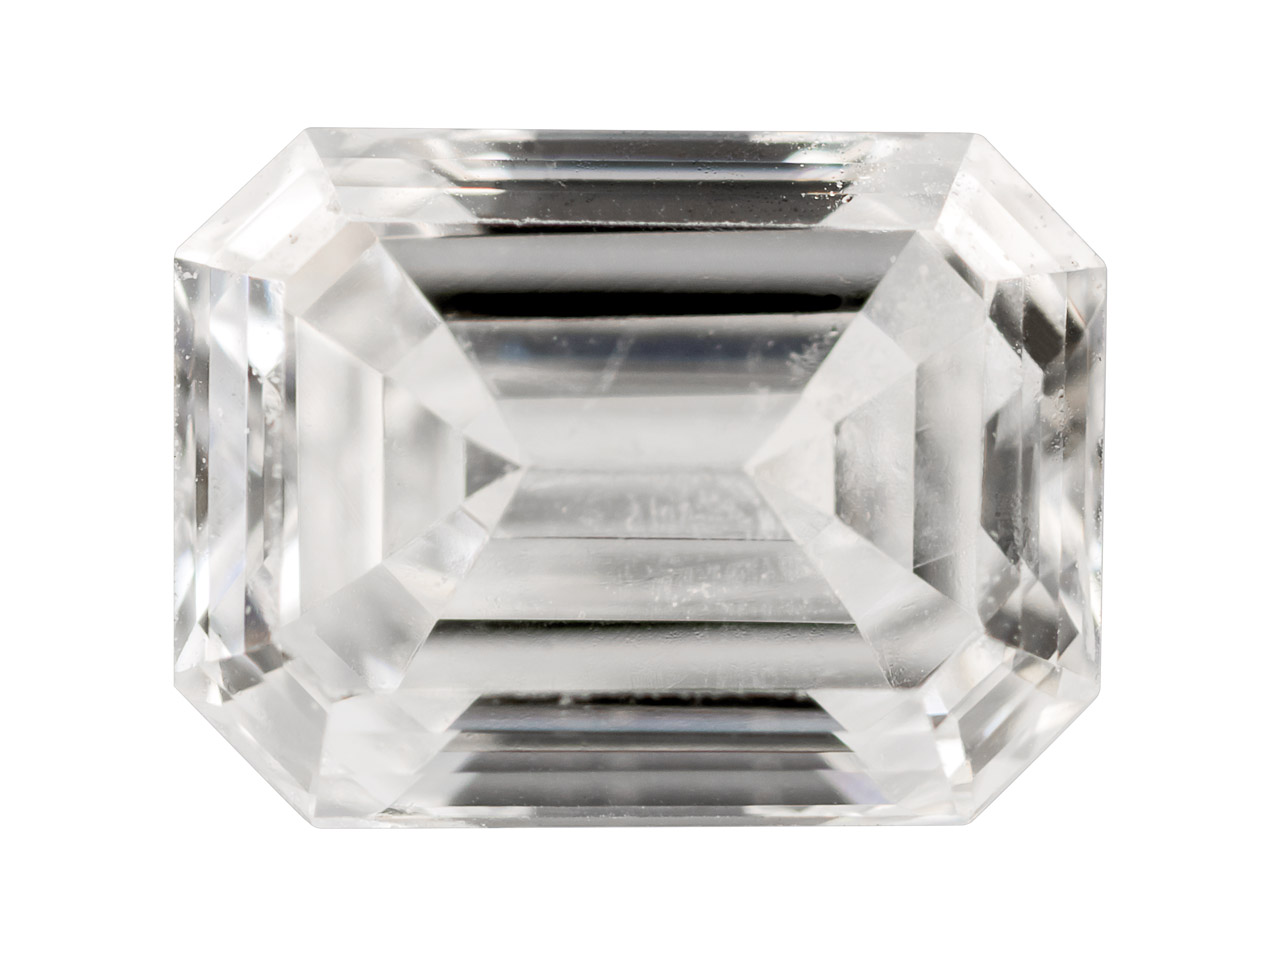 Diamond, Emerald Cut, H/si,        15pt/4x3mm